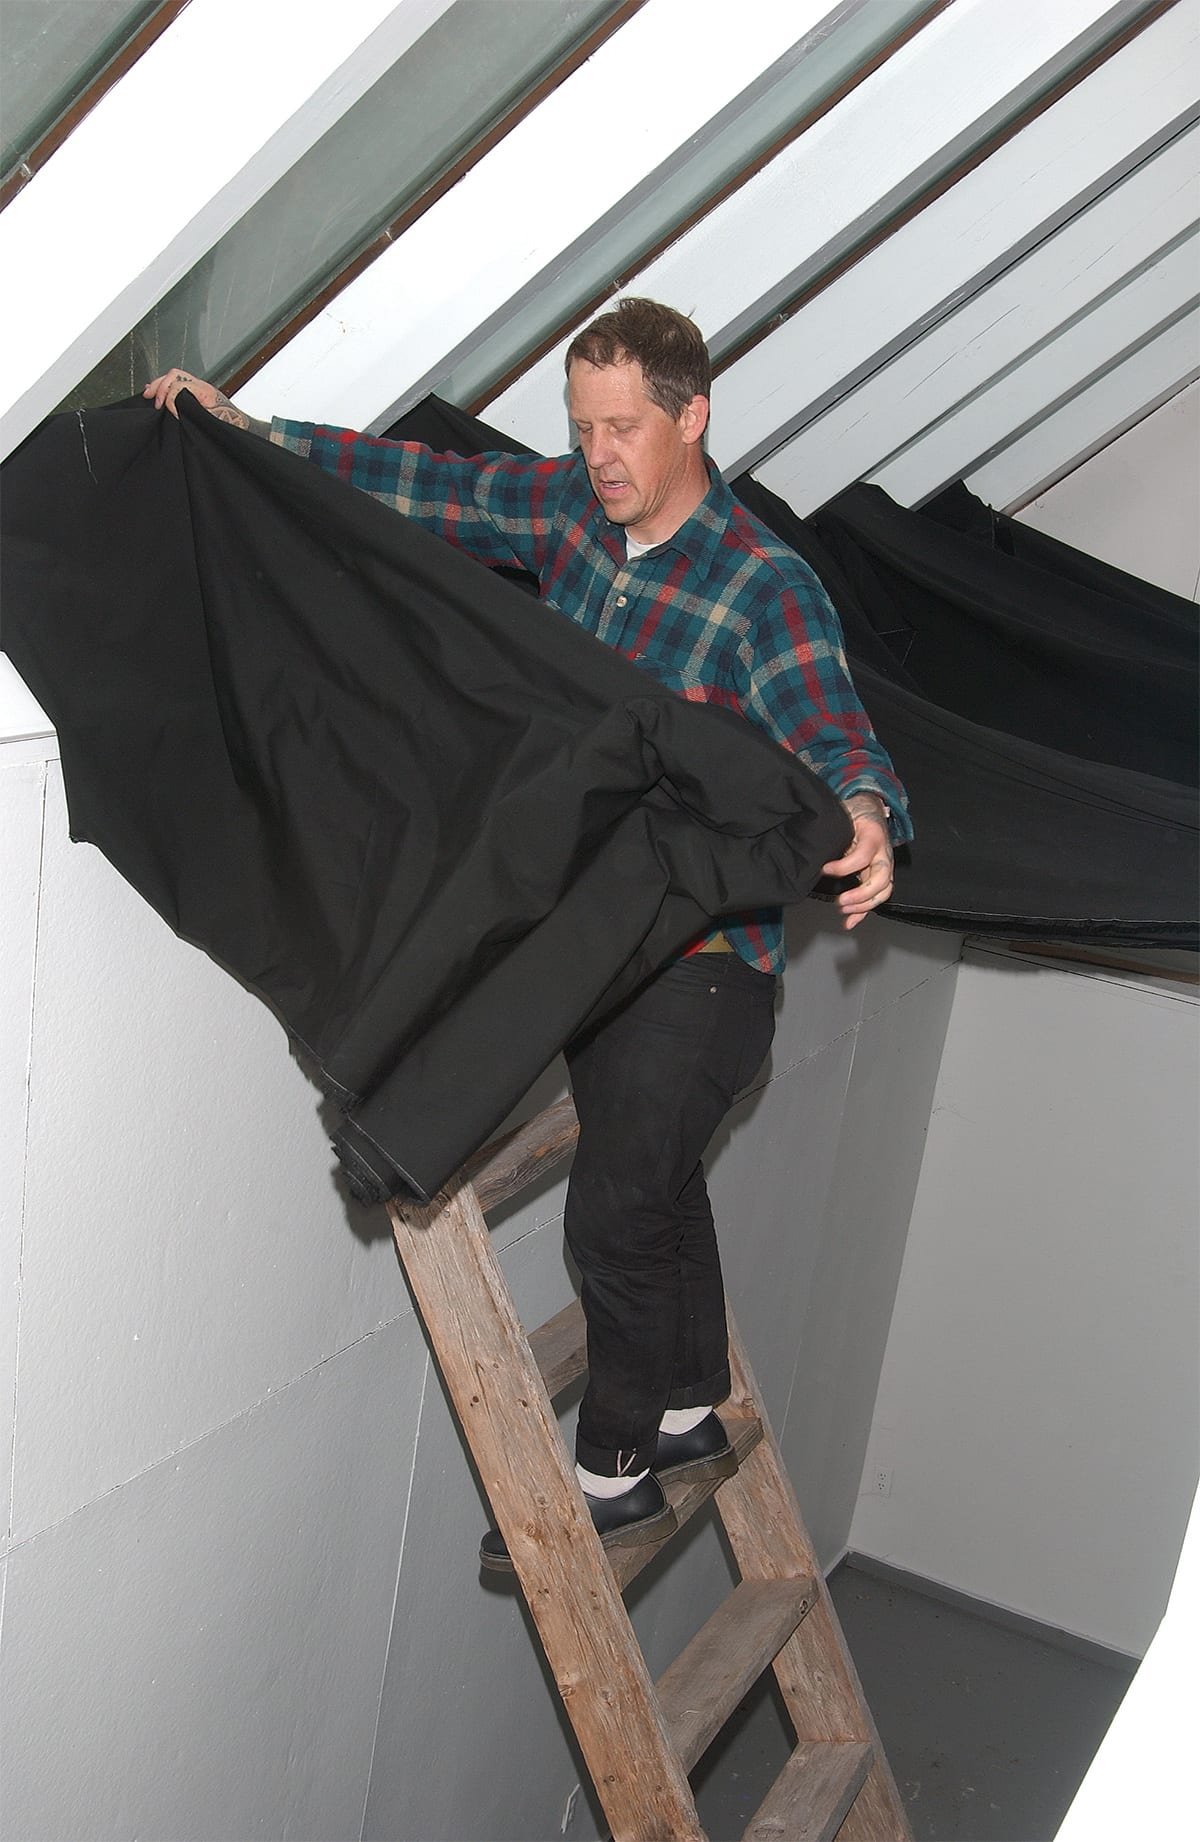 Artist Chris Duncan in residence at the historic and former home and studio of the painter Elaine de Kooning in East Hampton, NY.  The artist  places black cloth on the skylight of the studio to be bleached by the sun for a duration of four months. This effect is similar to that of a sungram or a solar etching. Assisting the artist is the Director and Co-owner of the Halsey Mckay Gallery, Ryan Wallace who is holding the ladder.